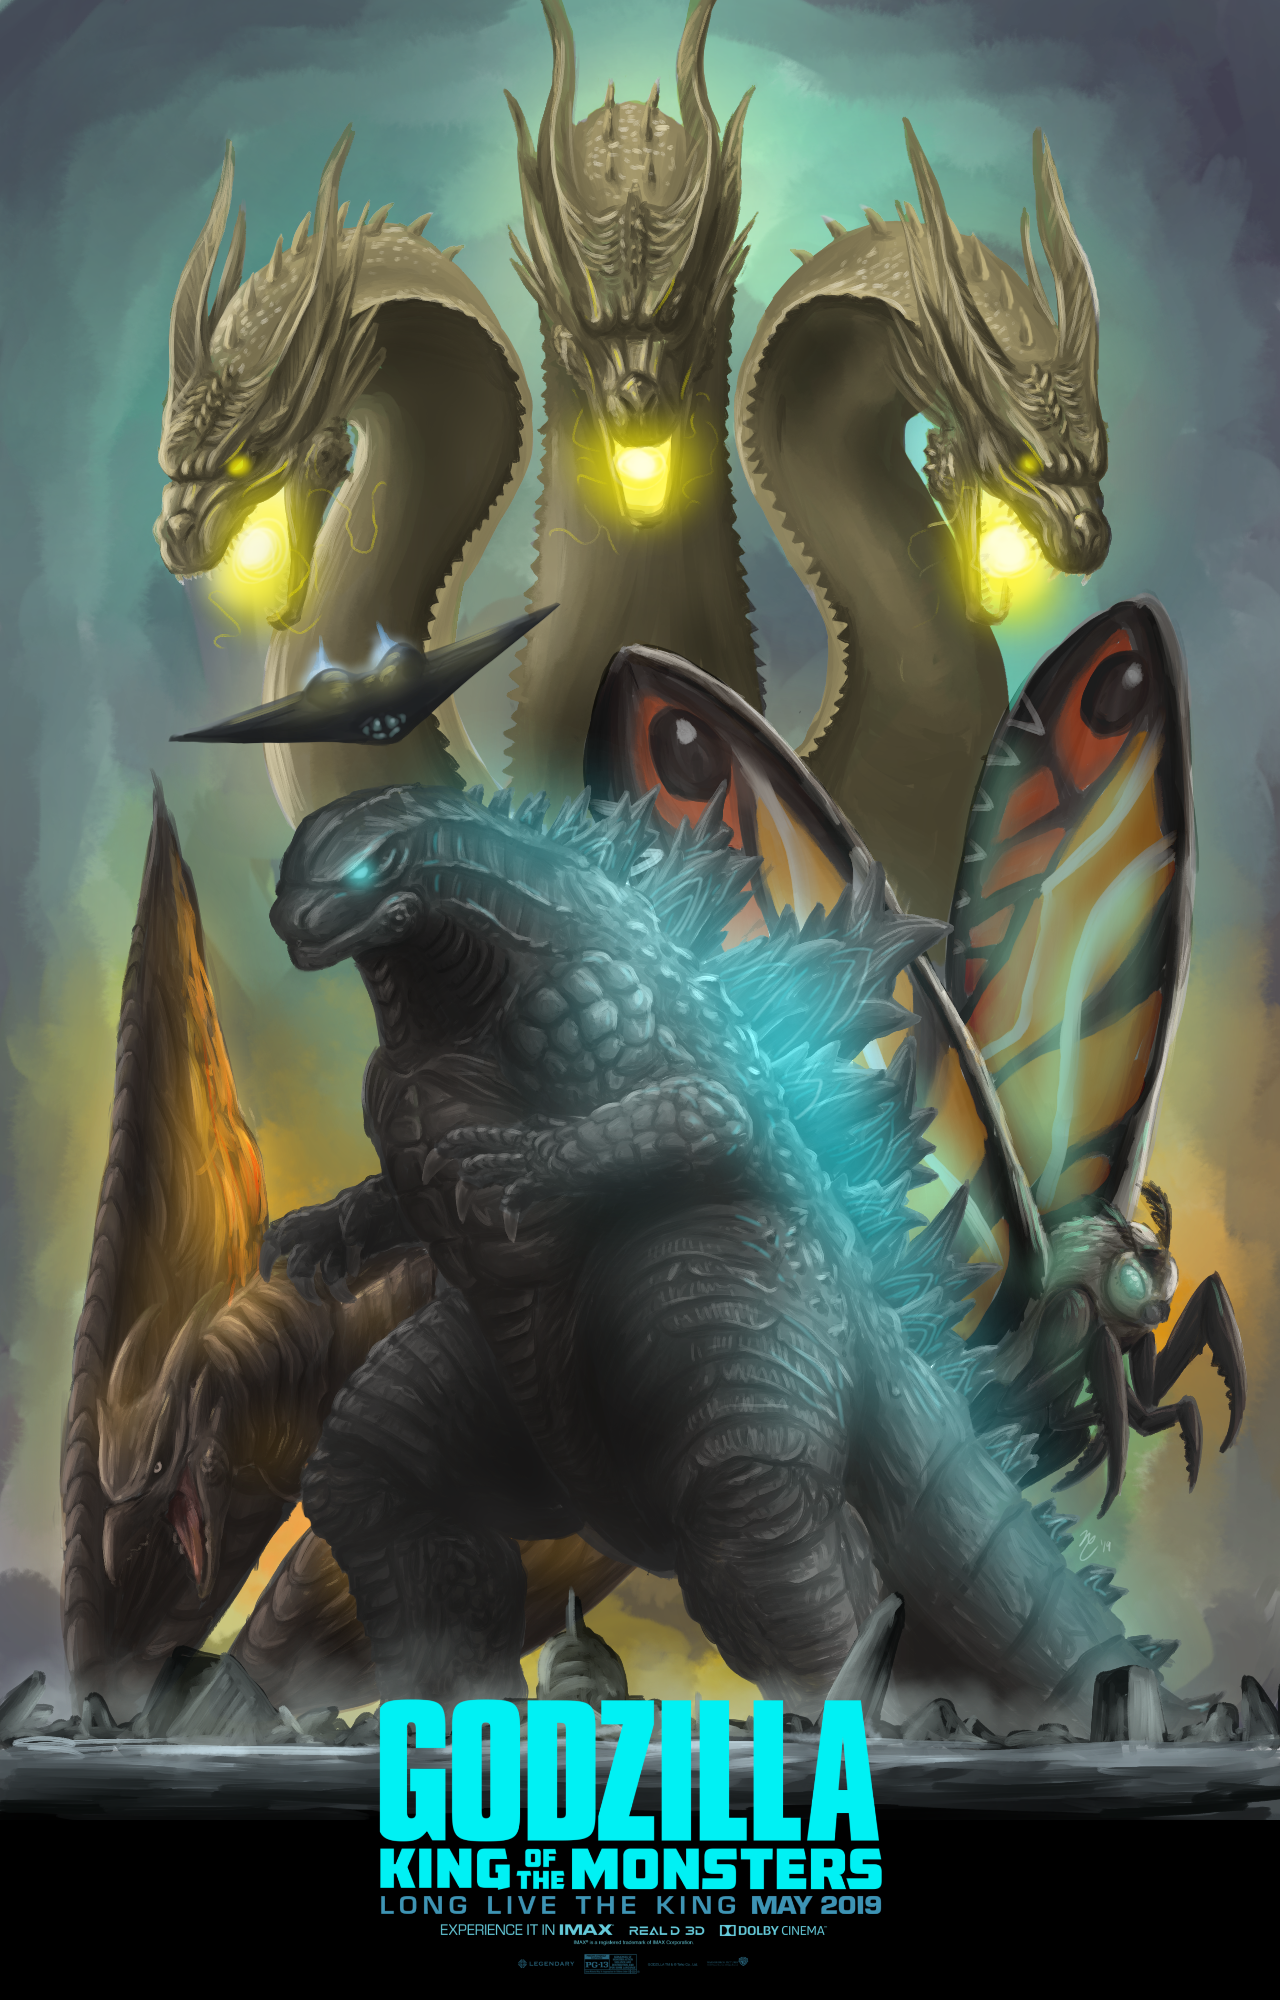 This Collection Is Dedicated To My Favorite And Greatest Monster Of All Time The One I Grew Up With Since Ch Godzilla Wallpaper All Godzilla Monsters Godzilla